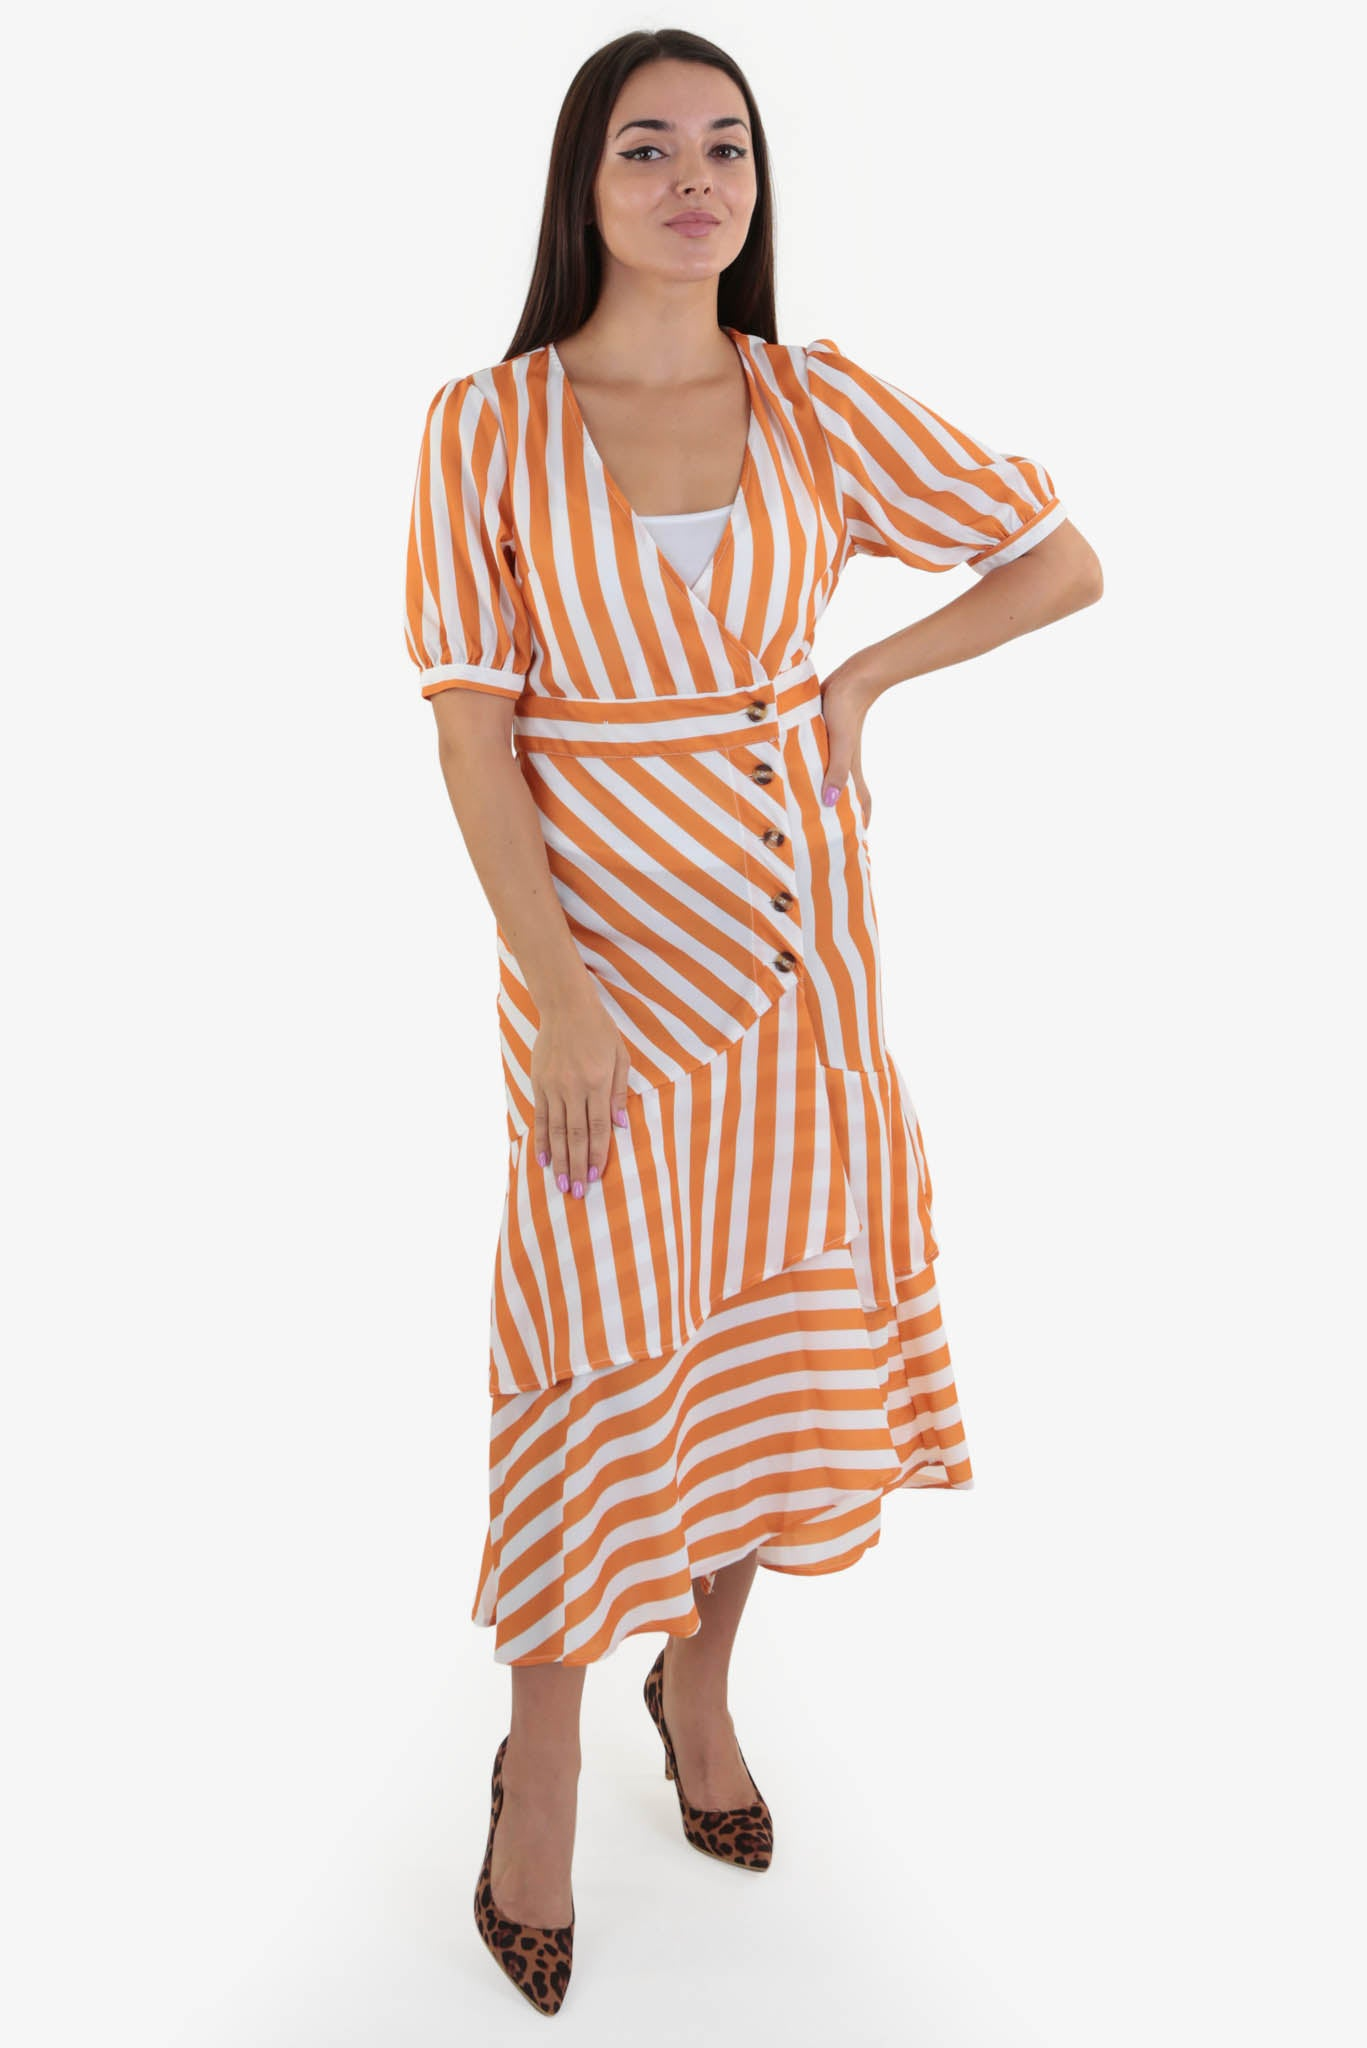 Stripped Summer Dress | Raw Orange